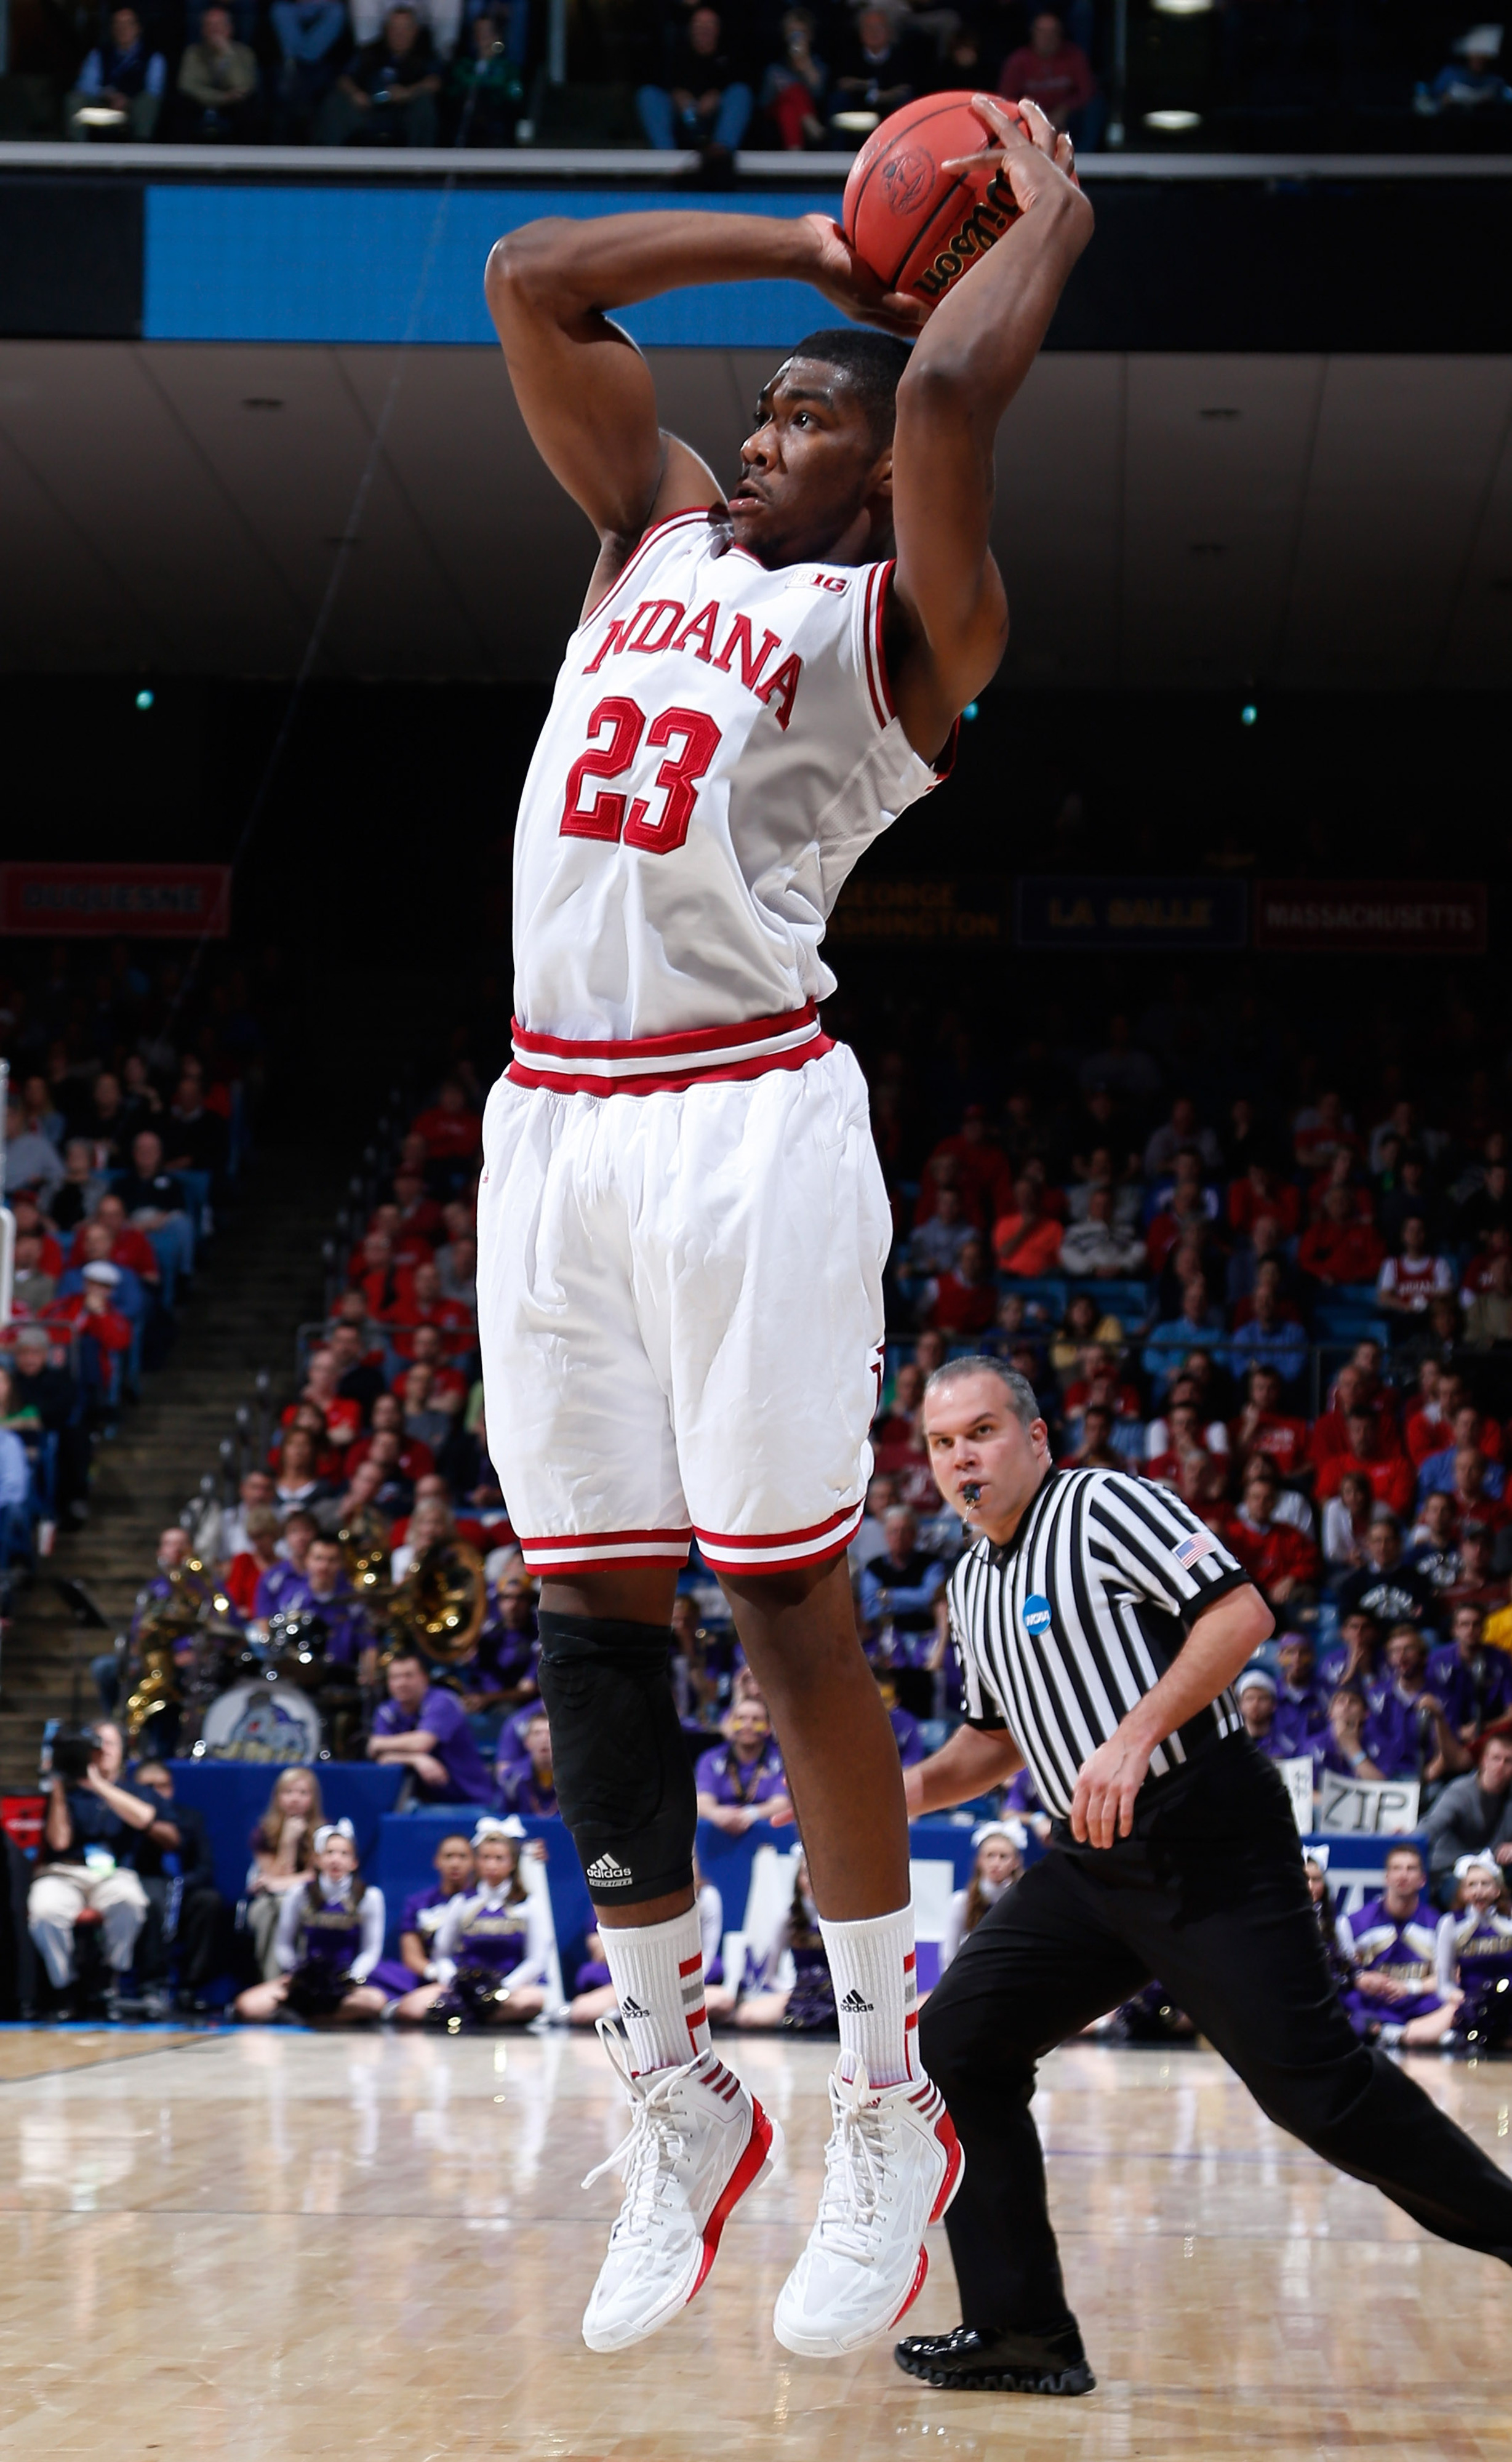 If Remy Abell can just be consistent from one game to the next, he'll go a long way toward making us forget JMart.